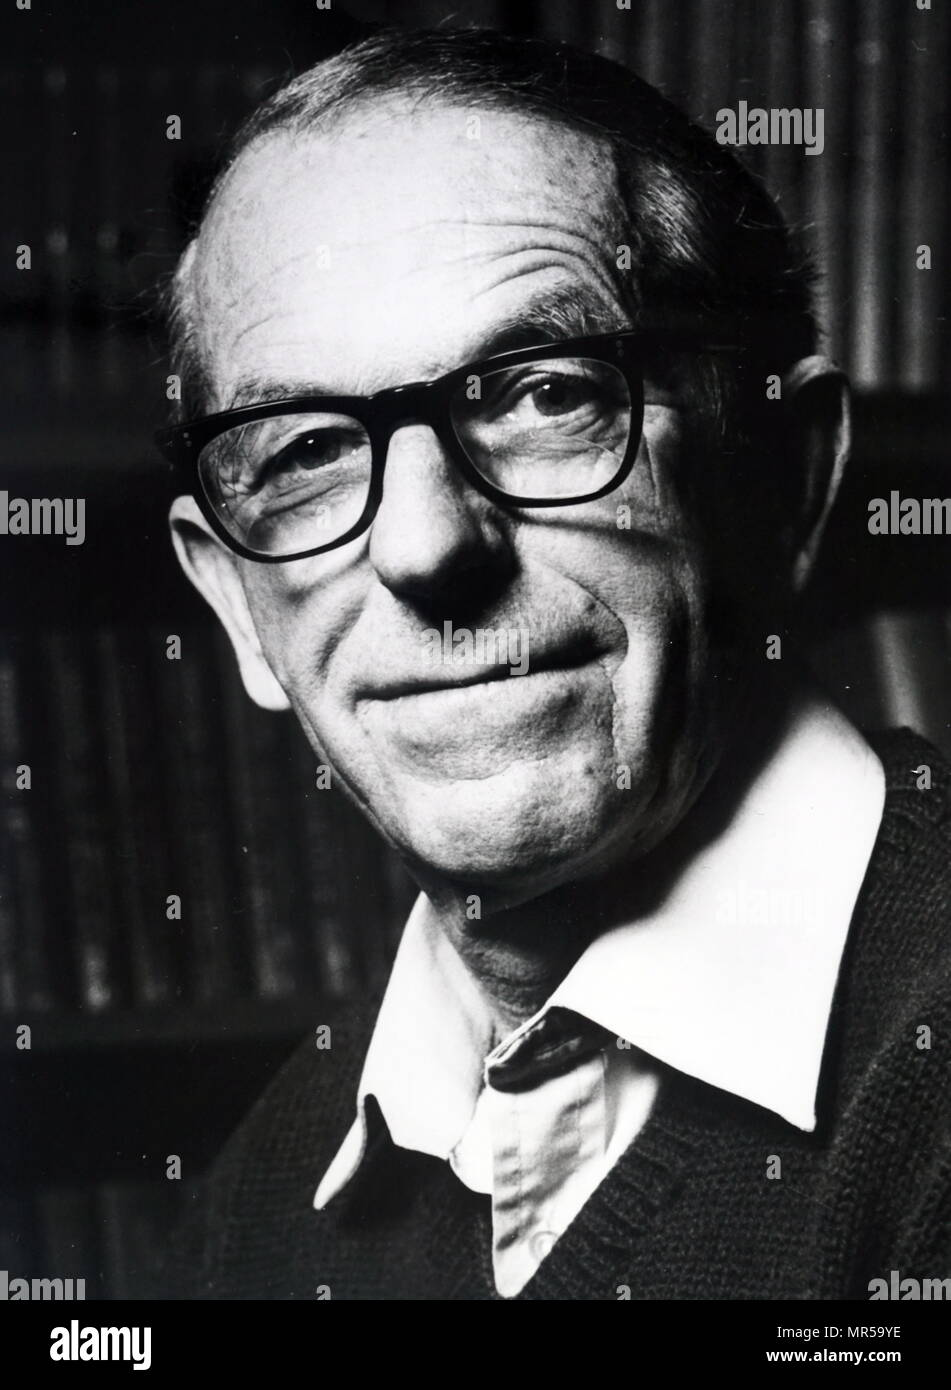 Photograph of Frederick Sanger (1918-2013) a British biochemist and Nobel Prize Laureate in Chemistry. Dated 20th century Stock Photo